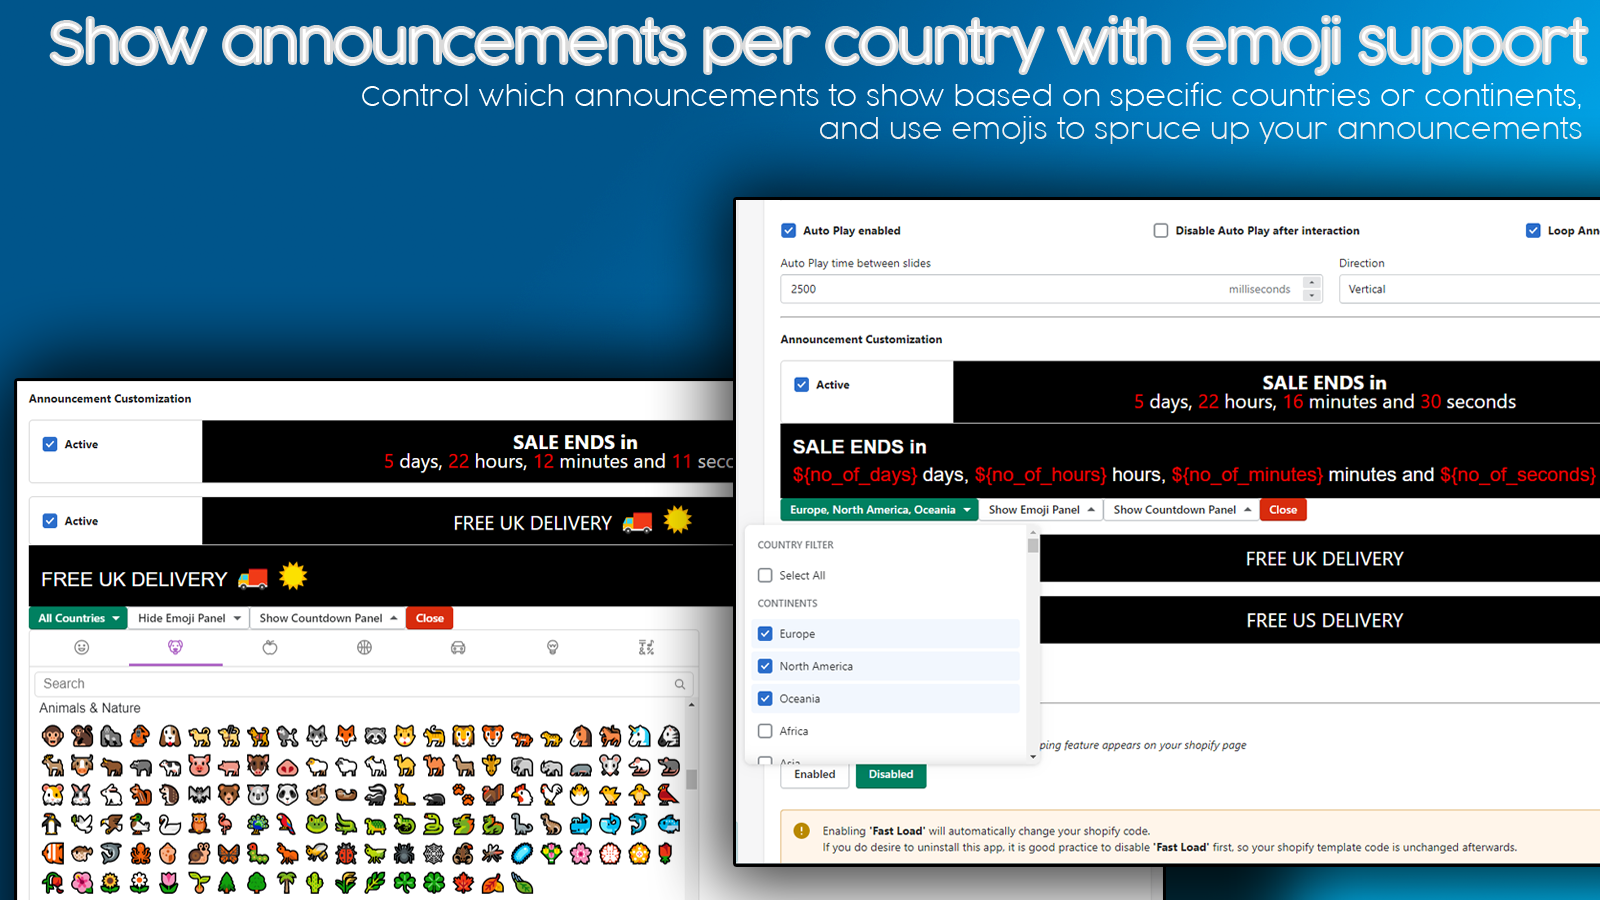 Show announcements per country with emoji support